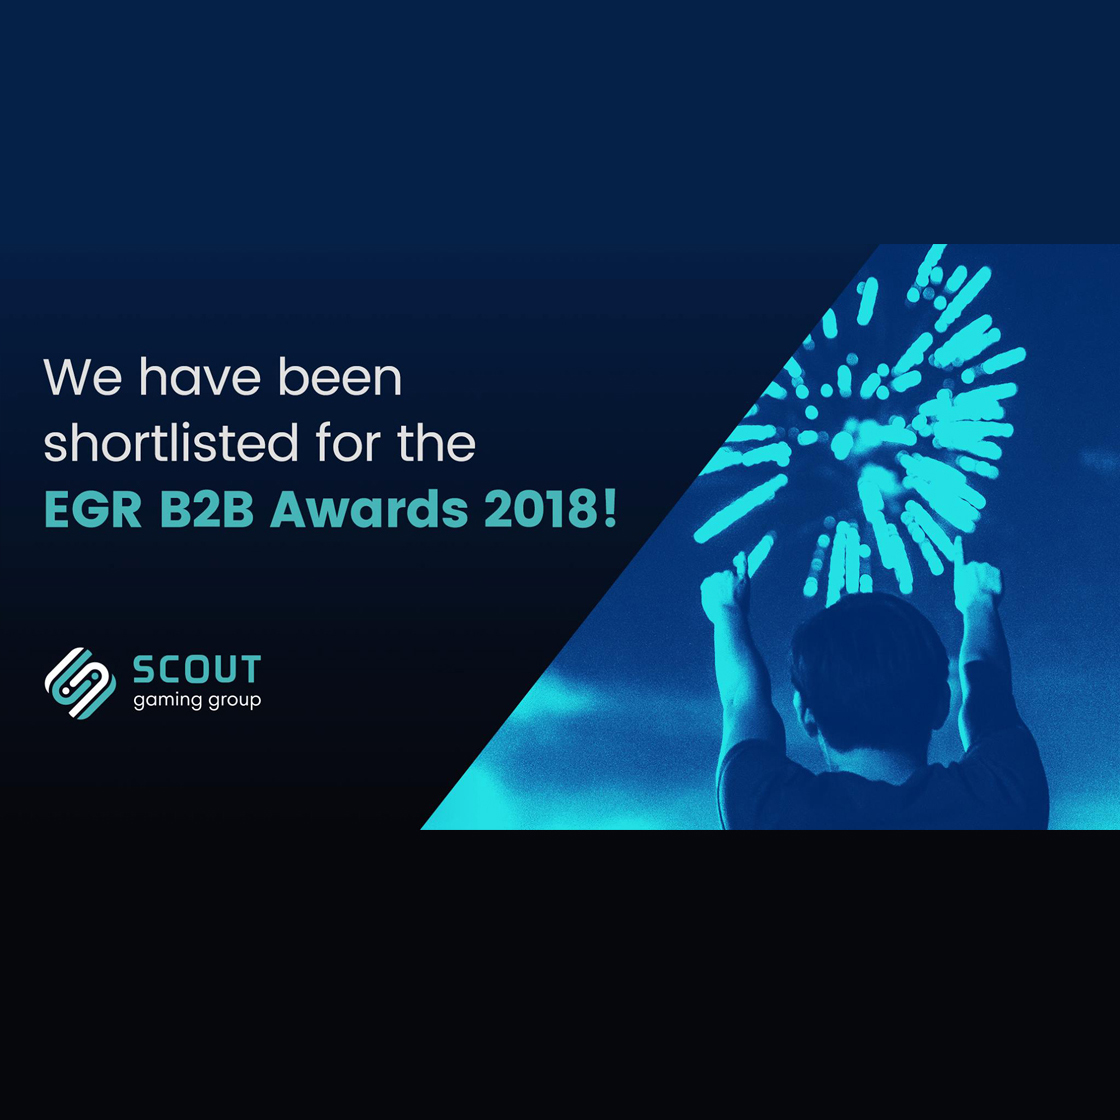 Scout GG have been shortlisted for the EGR B2B Awards